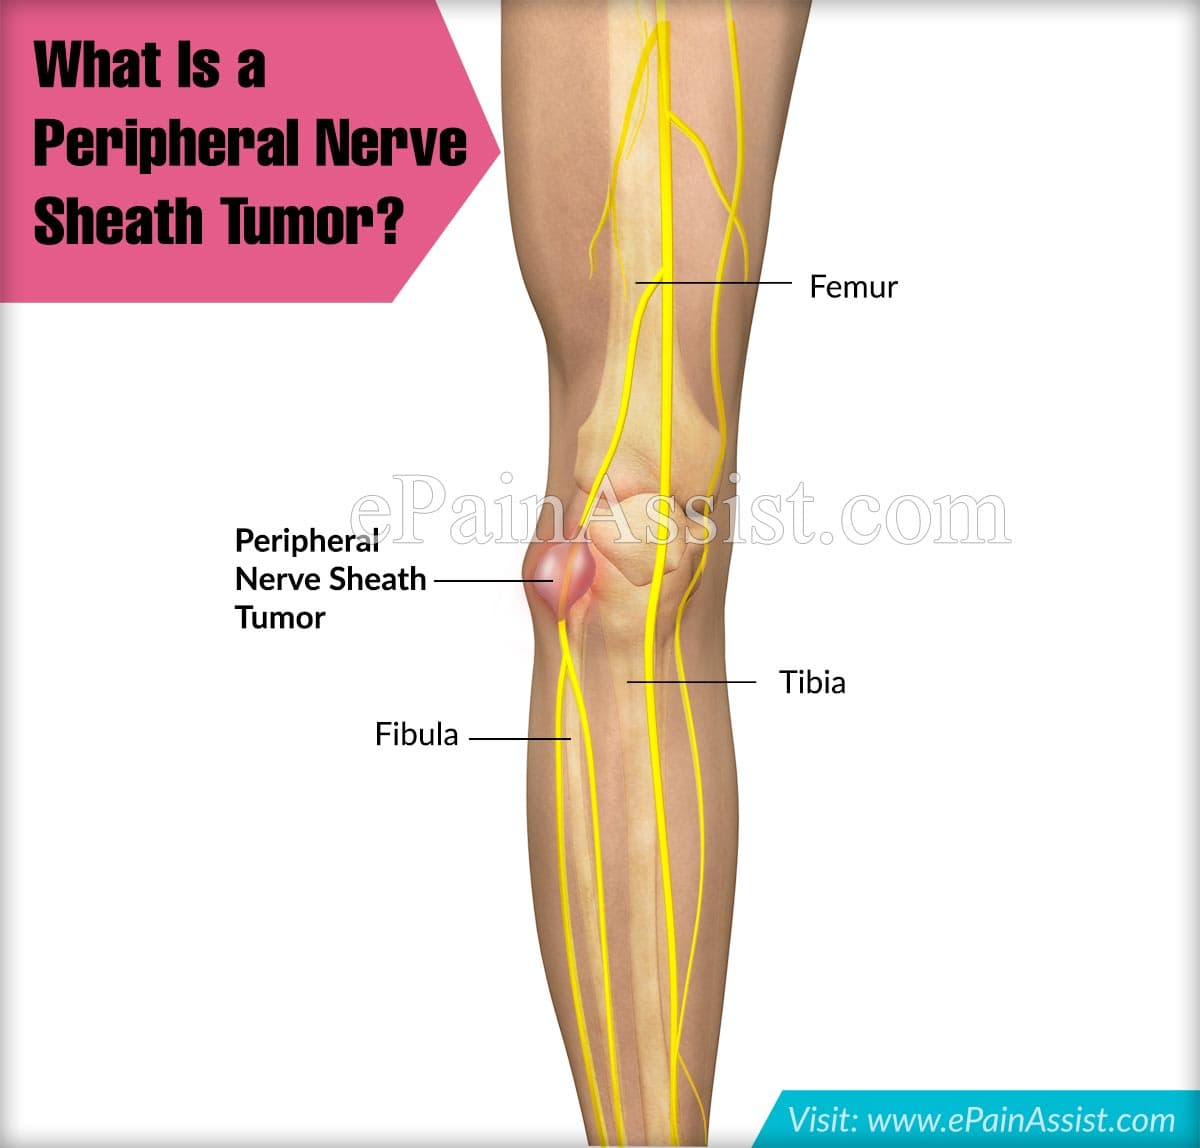 What Is A Peripheral Nerve Sheath Tumor?